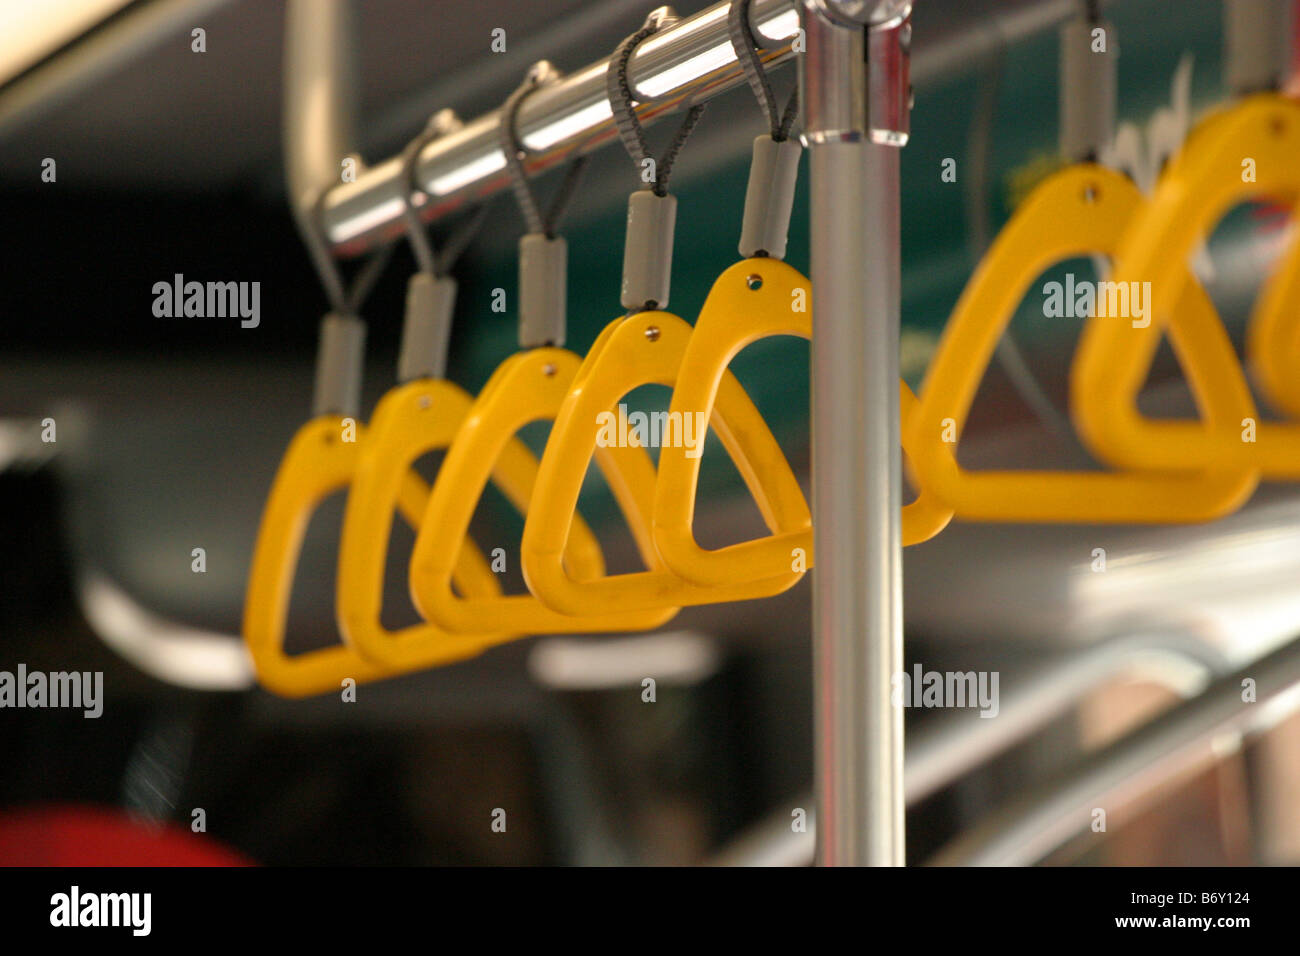 Grab handles in a bendy bus - Stock Image